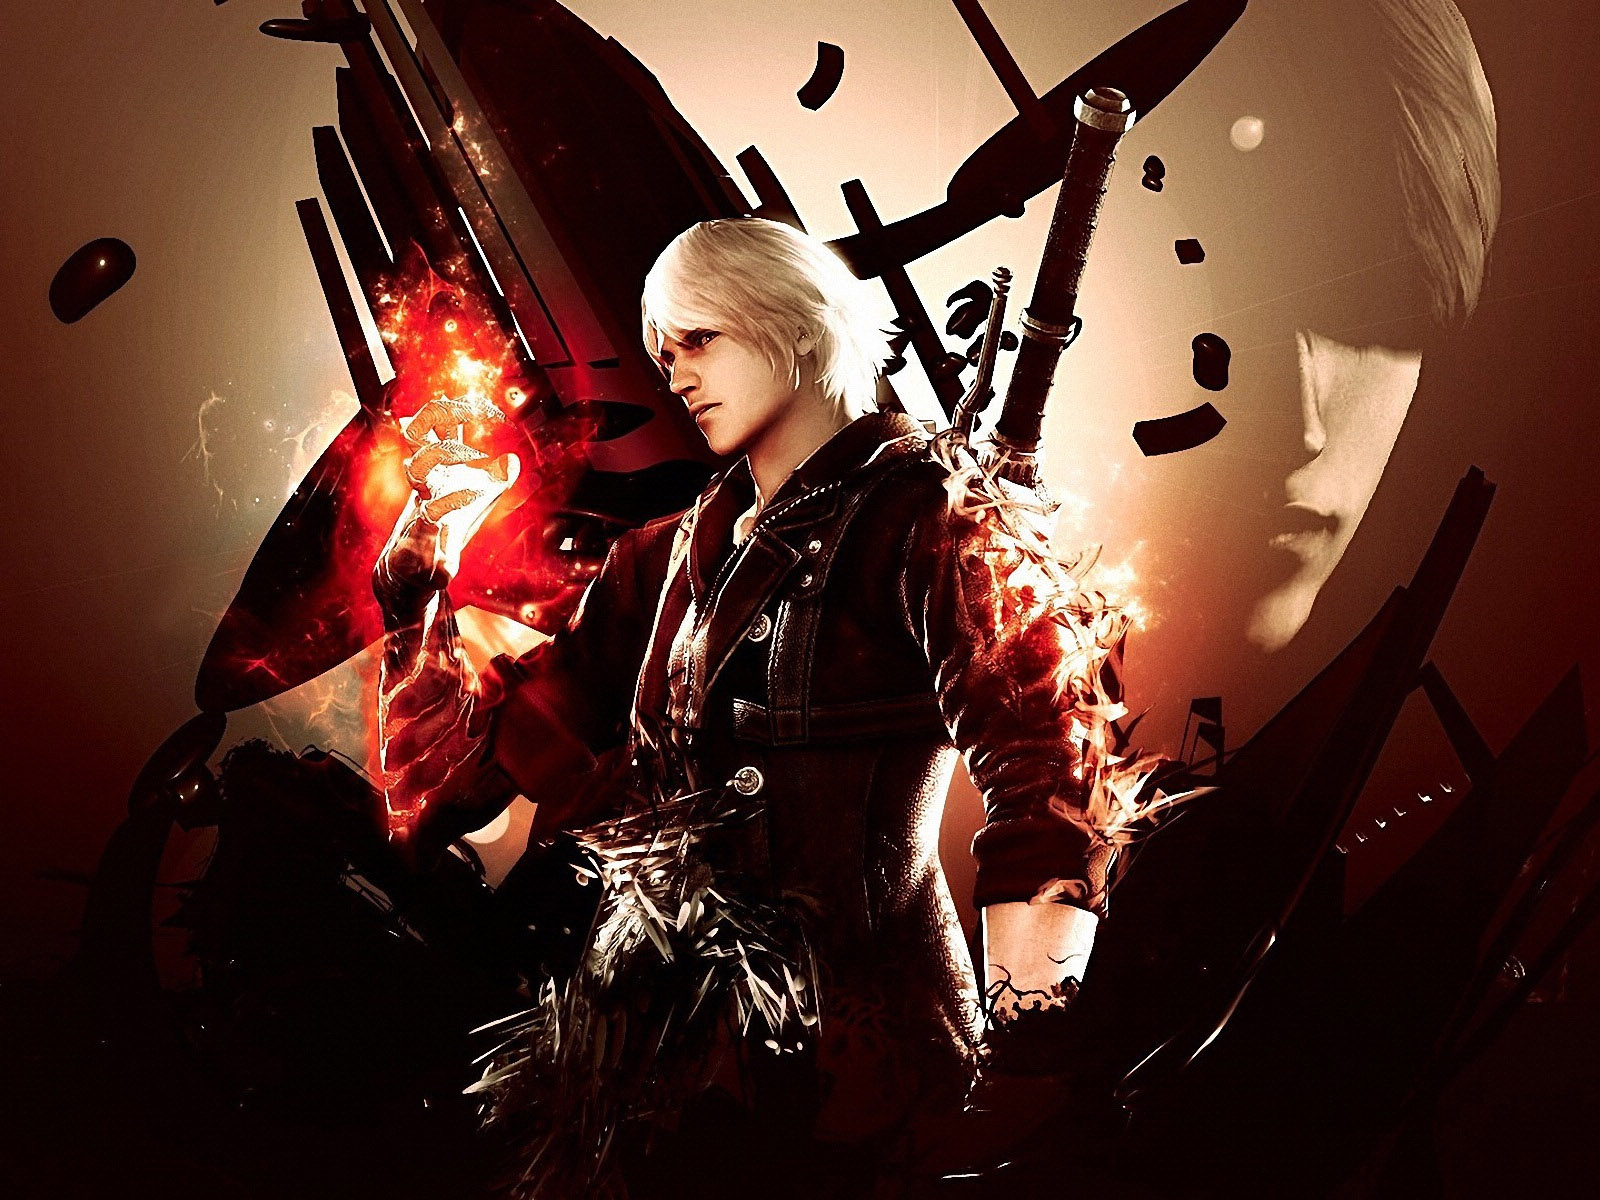 Devil may cry 5 wallpaper wallpapers devil may cry 5 wallpaper devil may cry 5 wallpaper wallpapers and stock photos voltagebd Gallery